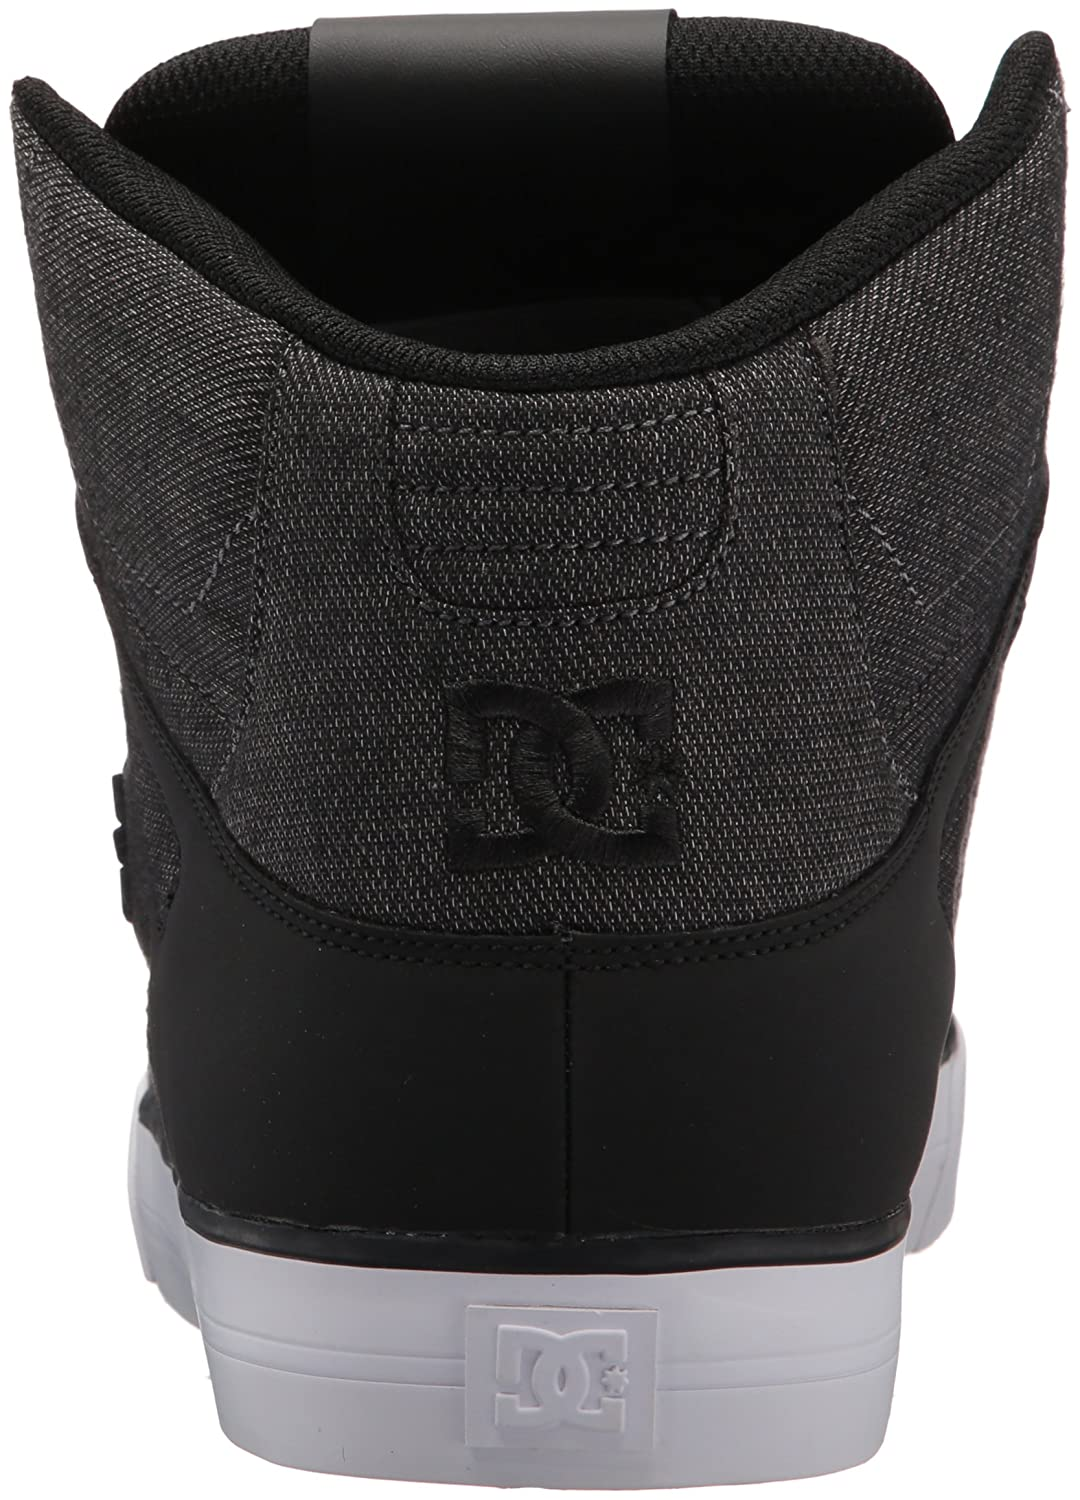 DC Shoes Men's Pure High Top WC TX SE Sneaker Shoes Black 9.5